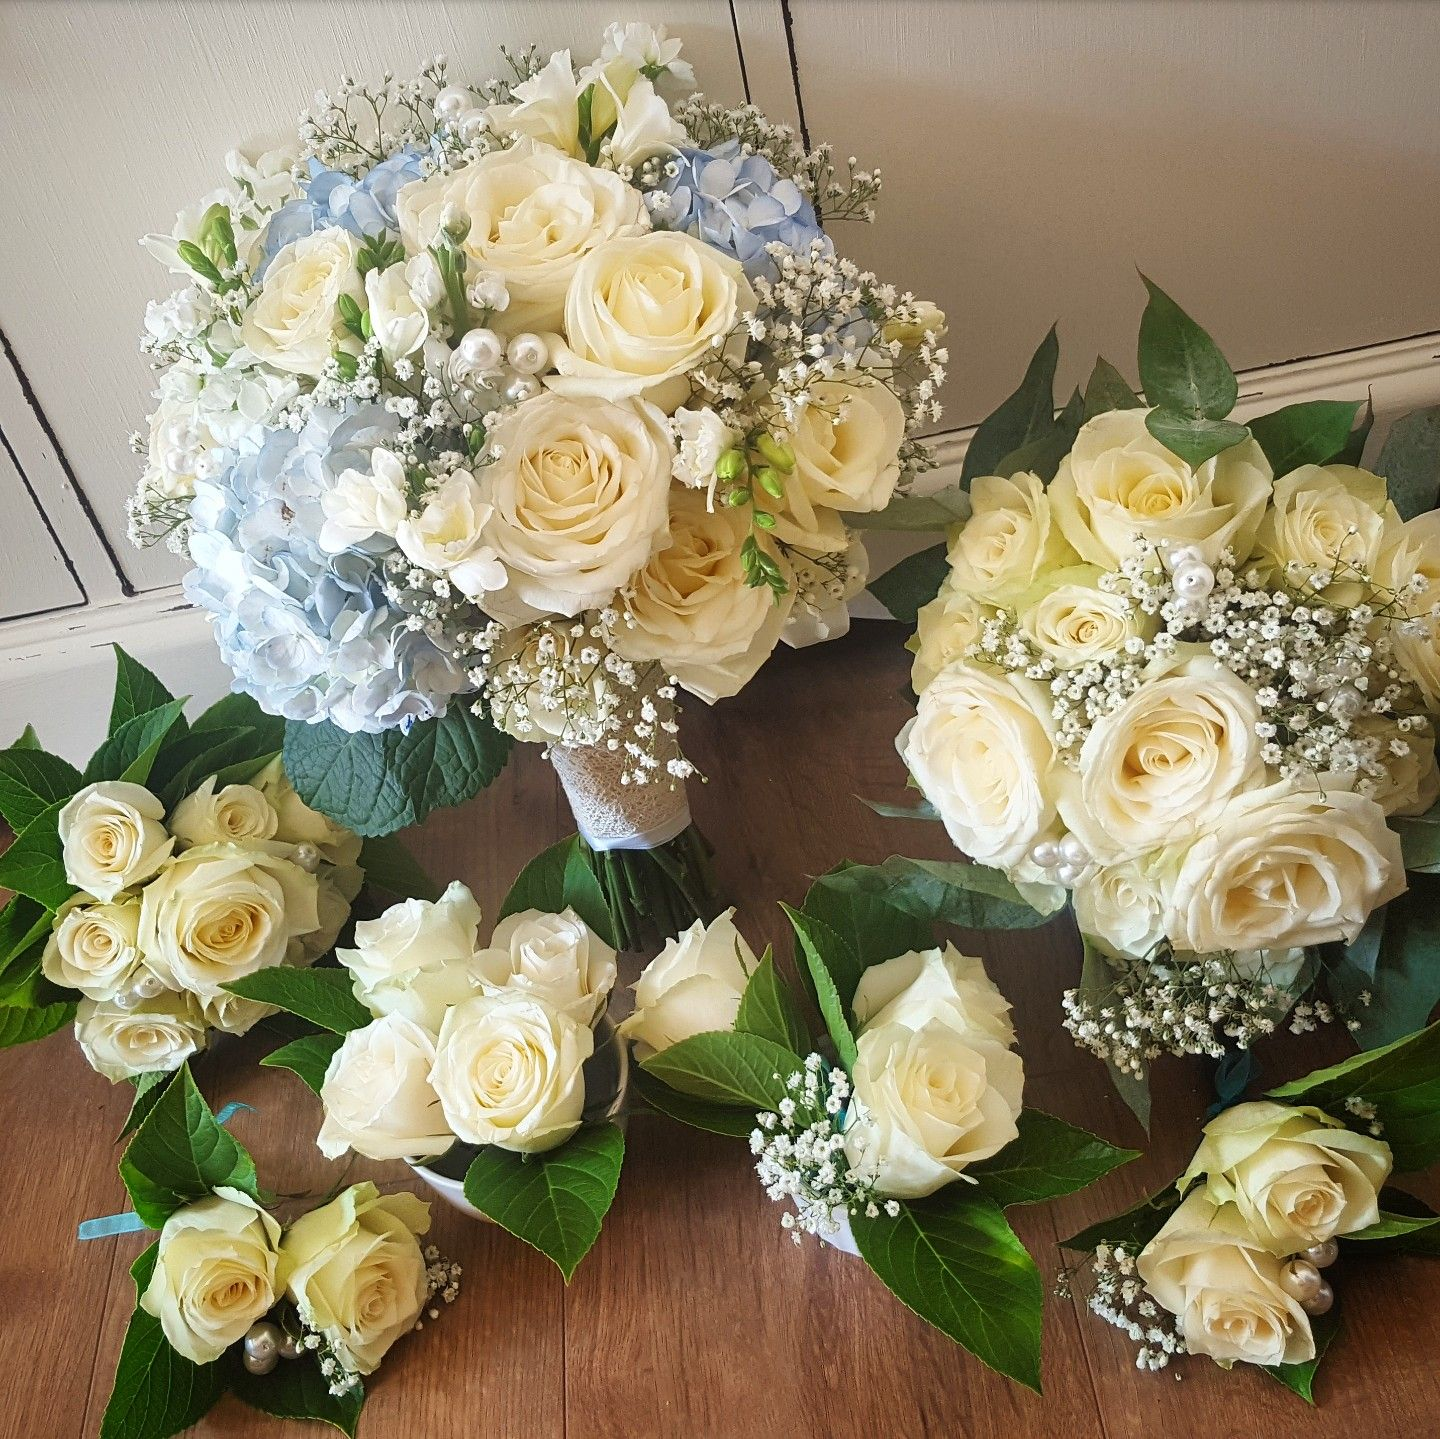 Chic White Wedding Theme: Blue And White 50's Theme Wedding Flowers Www.chic-dreams